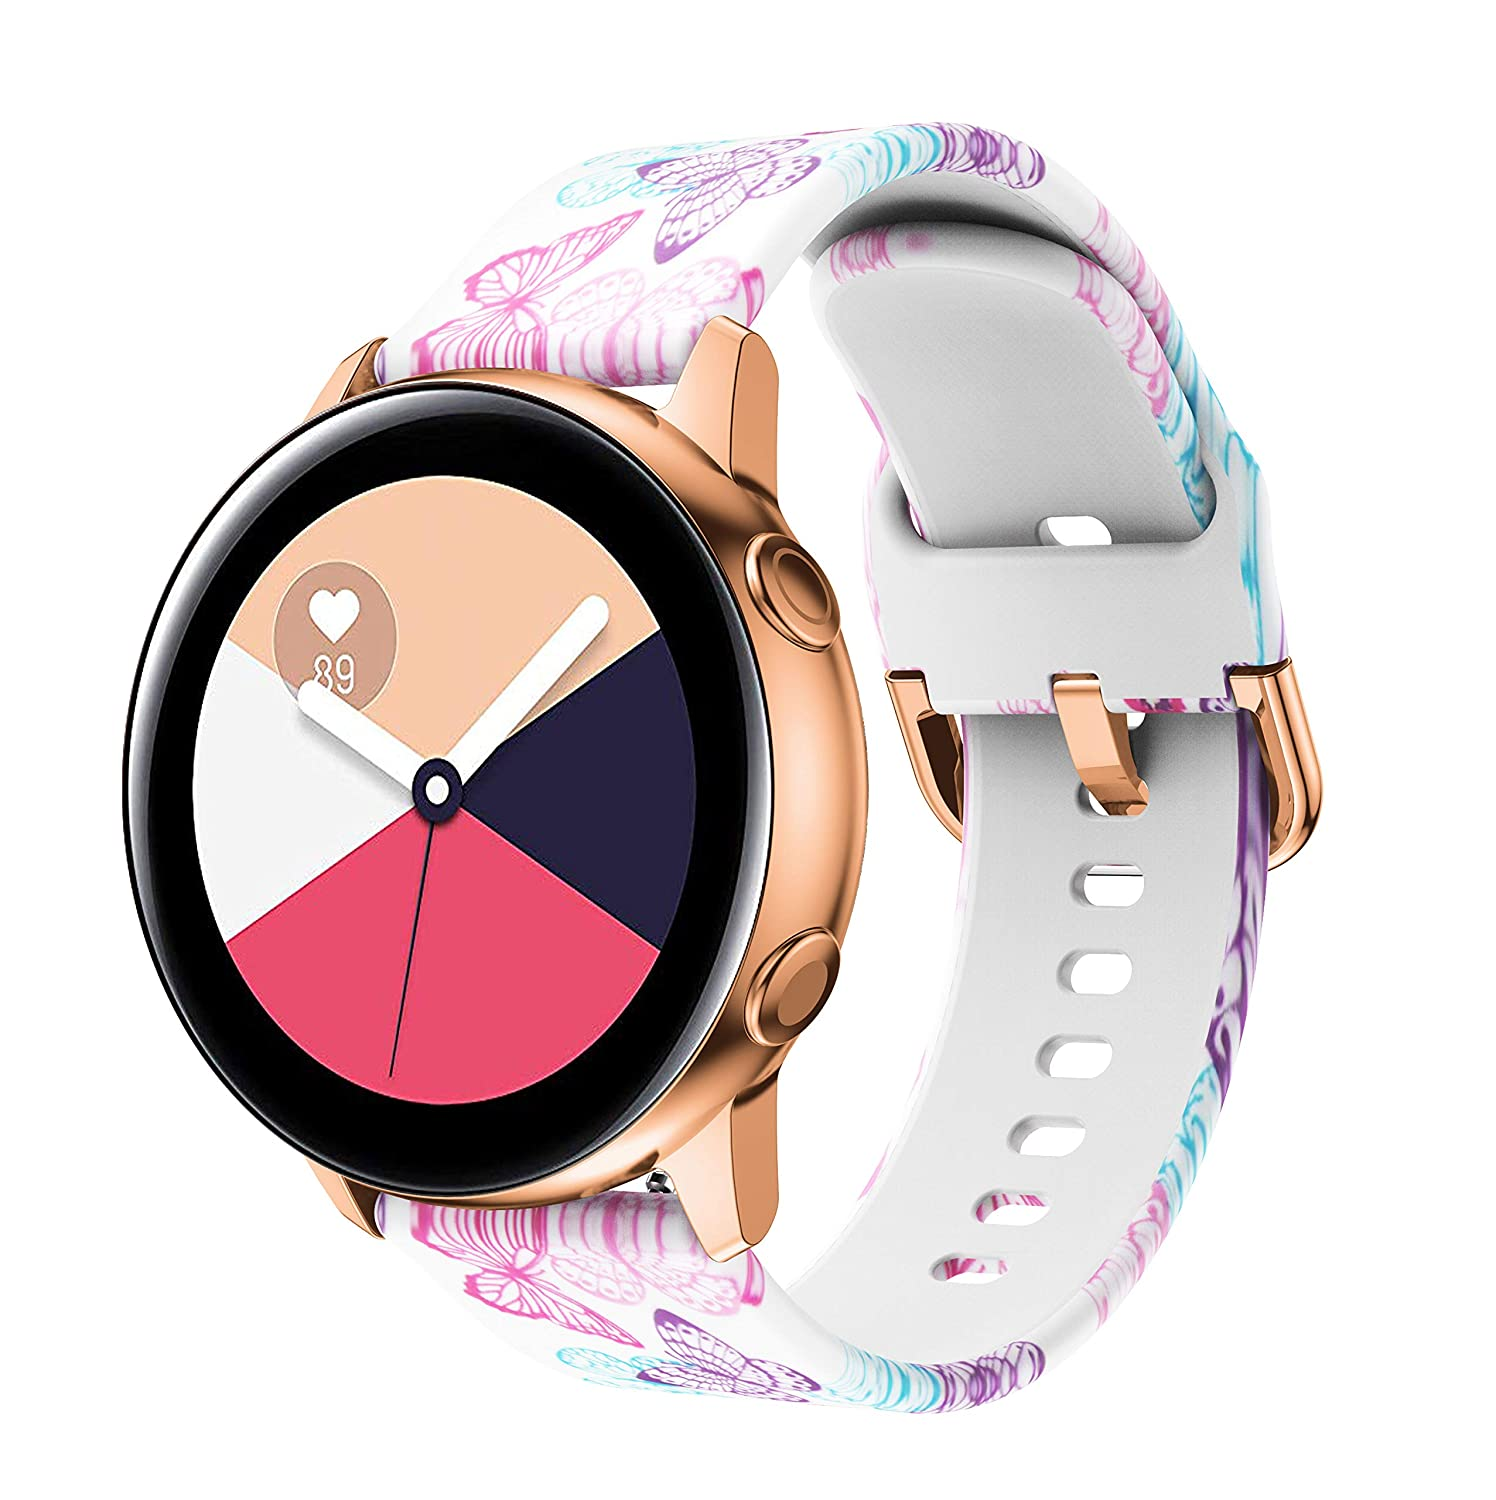 SBTSM Compatible with Samsung Galaxy Watch Active Bands/Active 2 Bands, Galaxy Watch 40mm 42mm Bands/Gear Sport Bands, 20mm Waterproof Soft Silicone ...